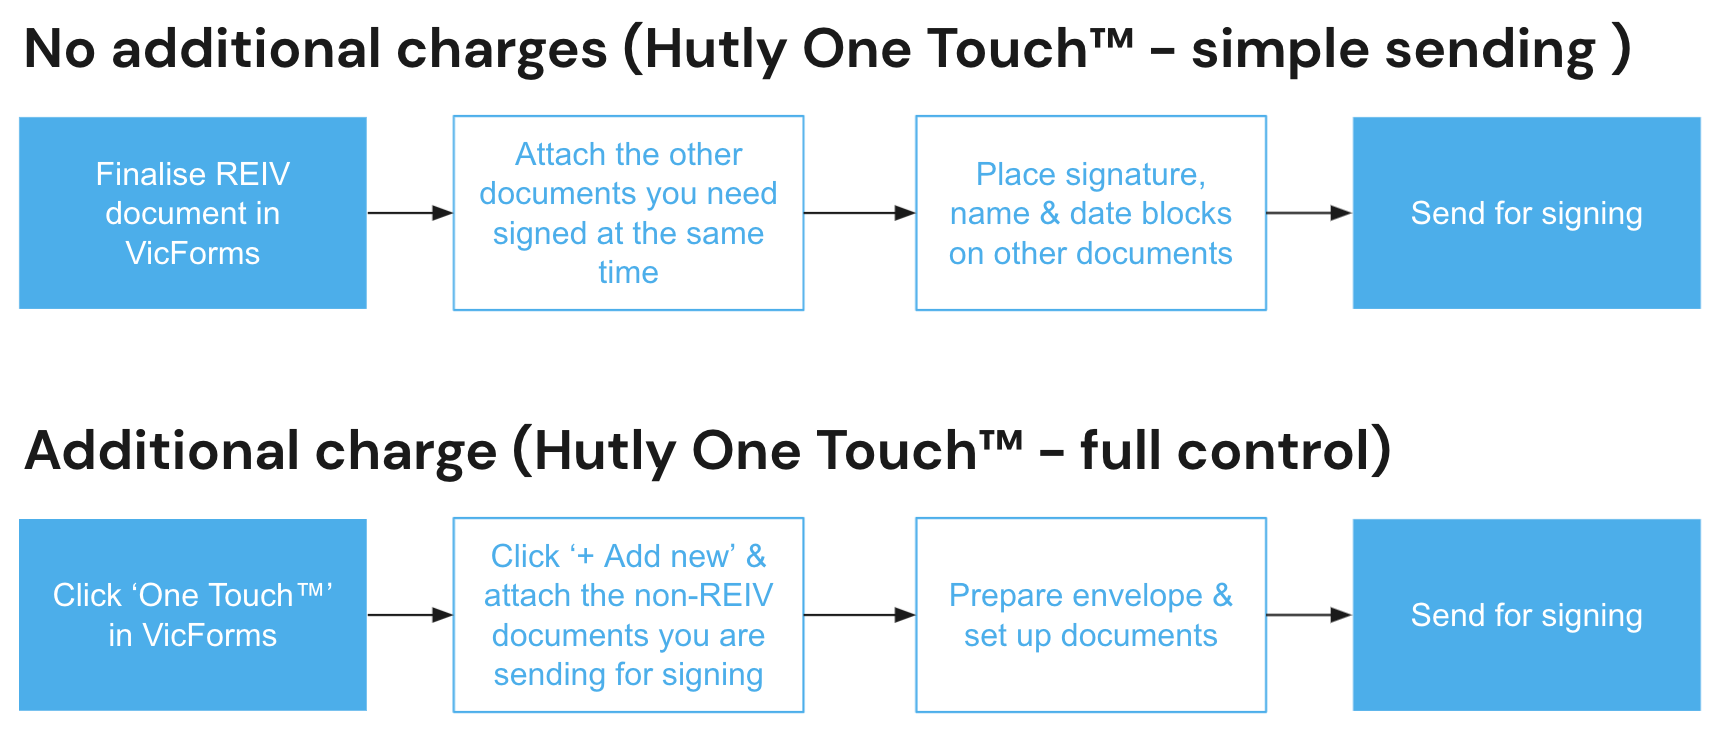 Image showing different methods of using Hutly One Touch™ in VicForms